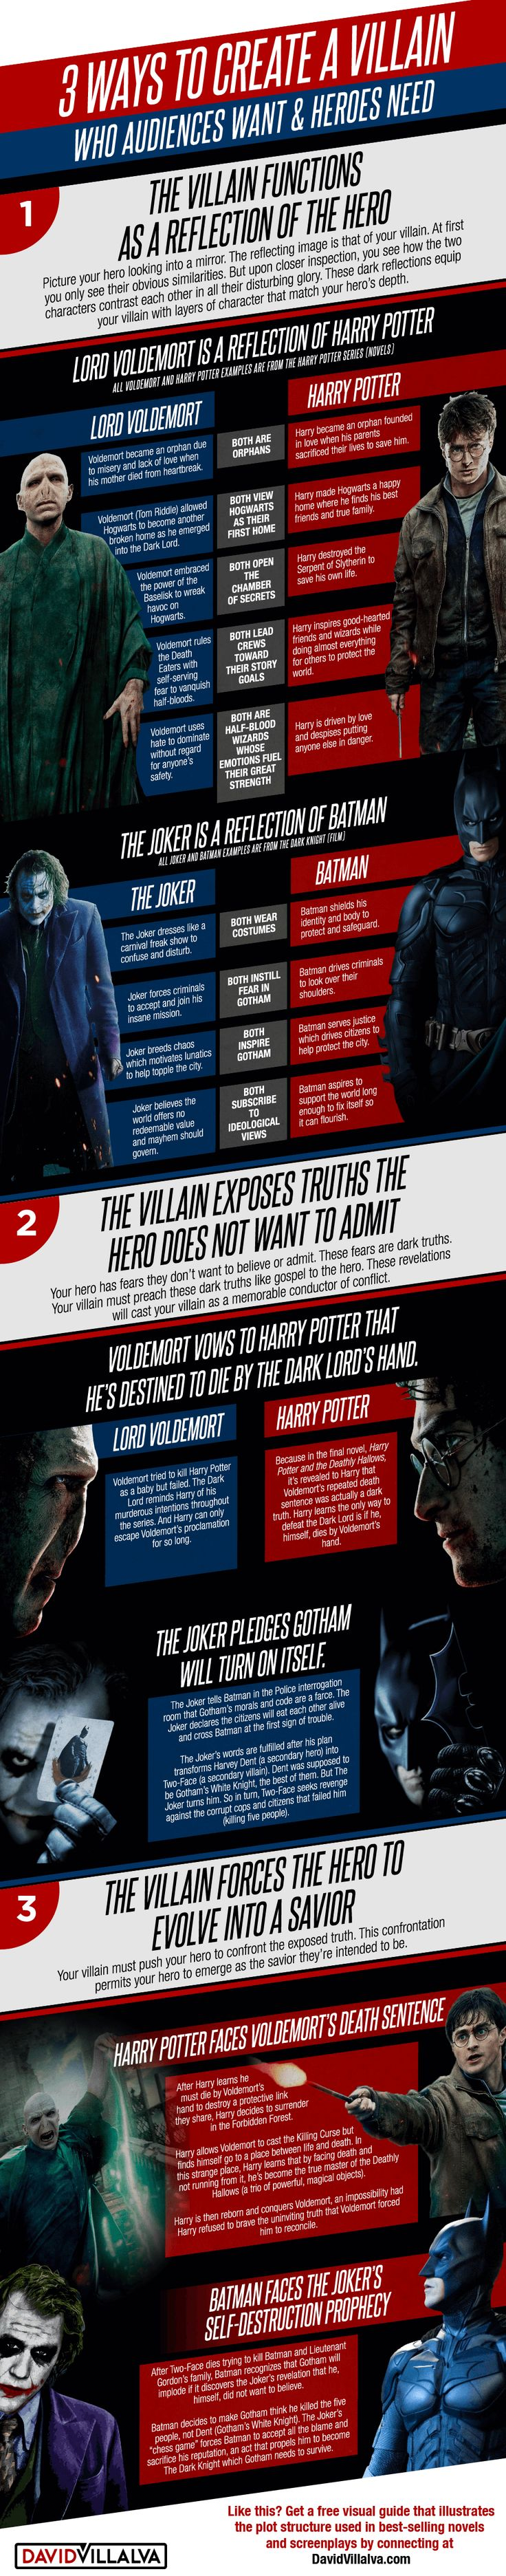 3 Ways to Create a Villain Who Audiences Want & Heroes Need [Infographic]